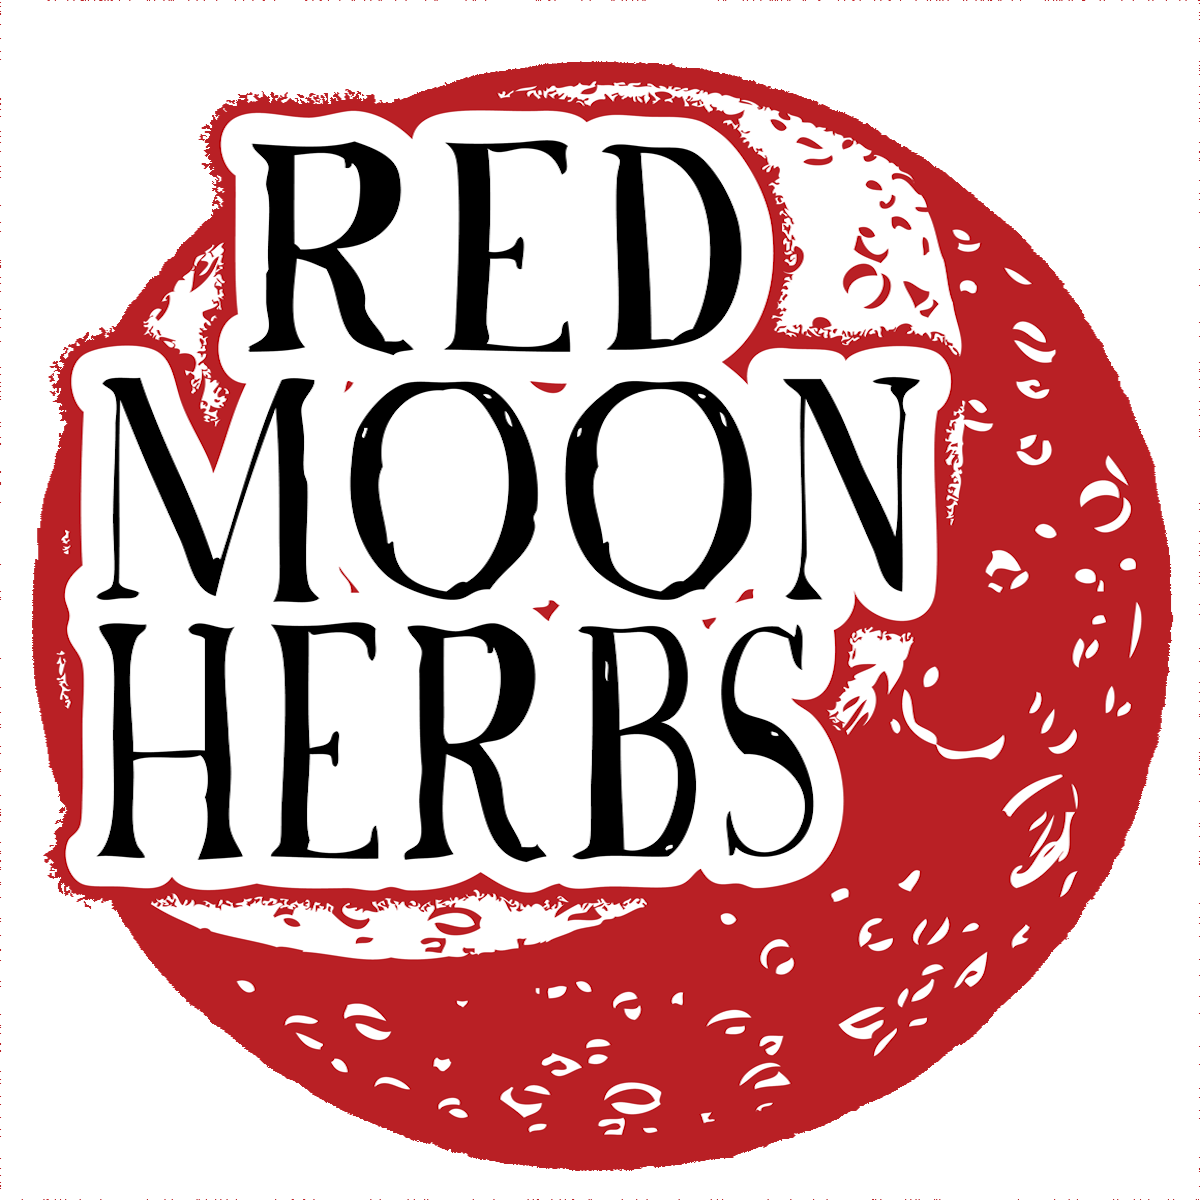 - Red Moon Herbs offers fresh organic extracts, dried herbs, salves, oils, vinegars, syrups, and herbal educational materials made in the Wise Woman Tradition.